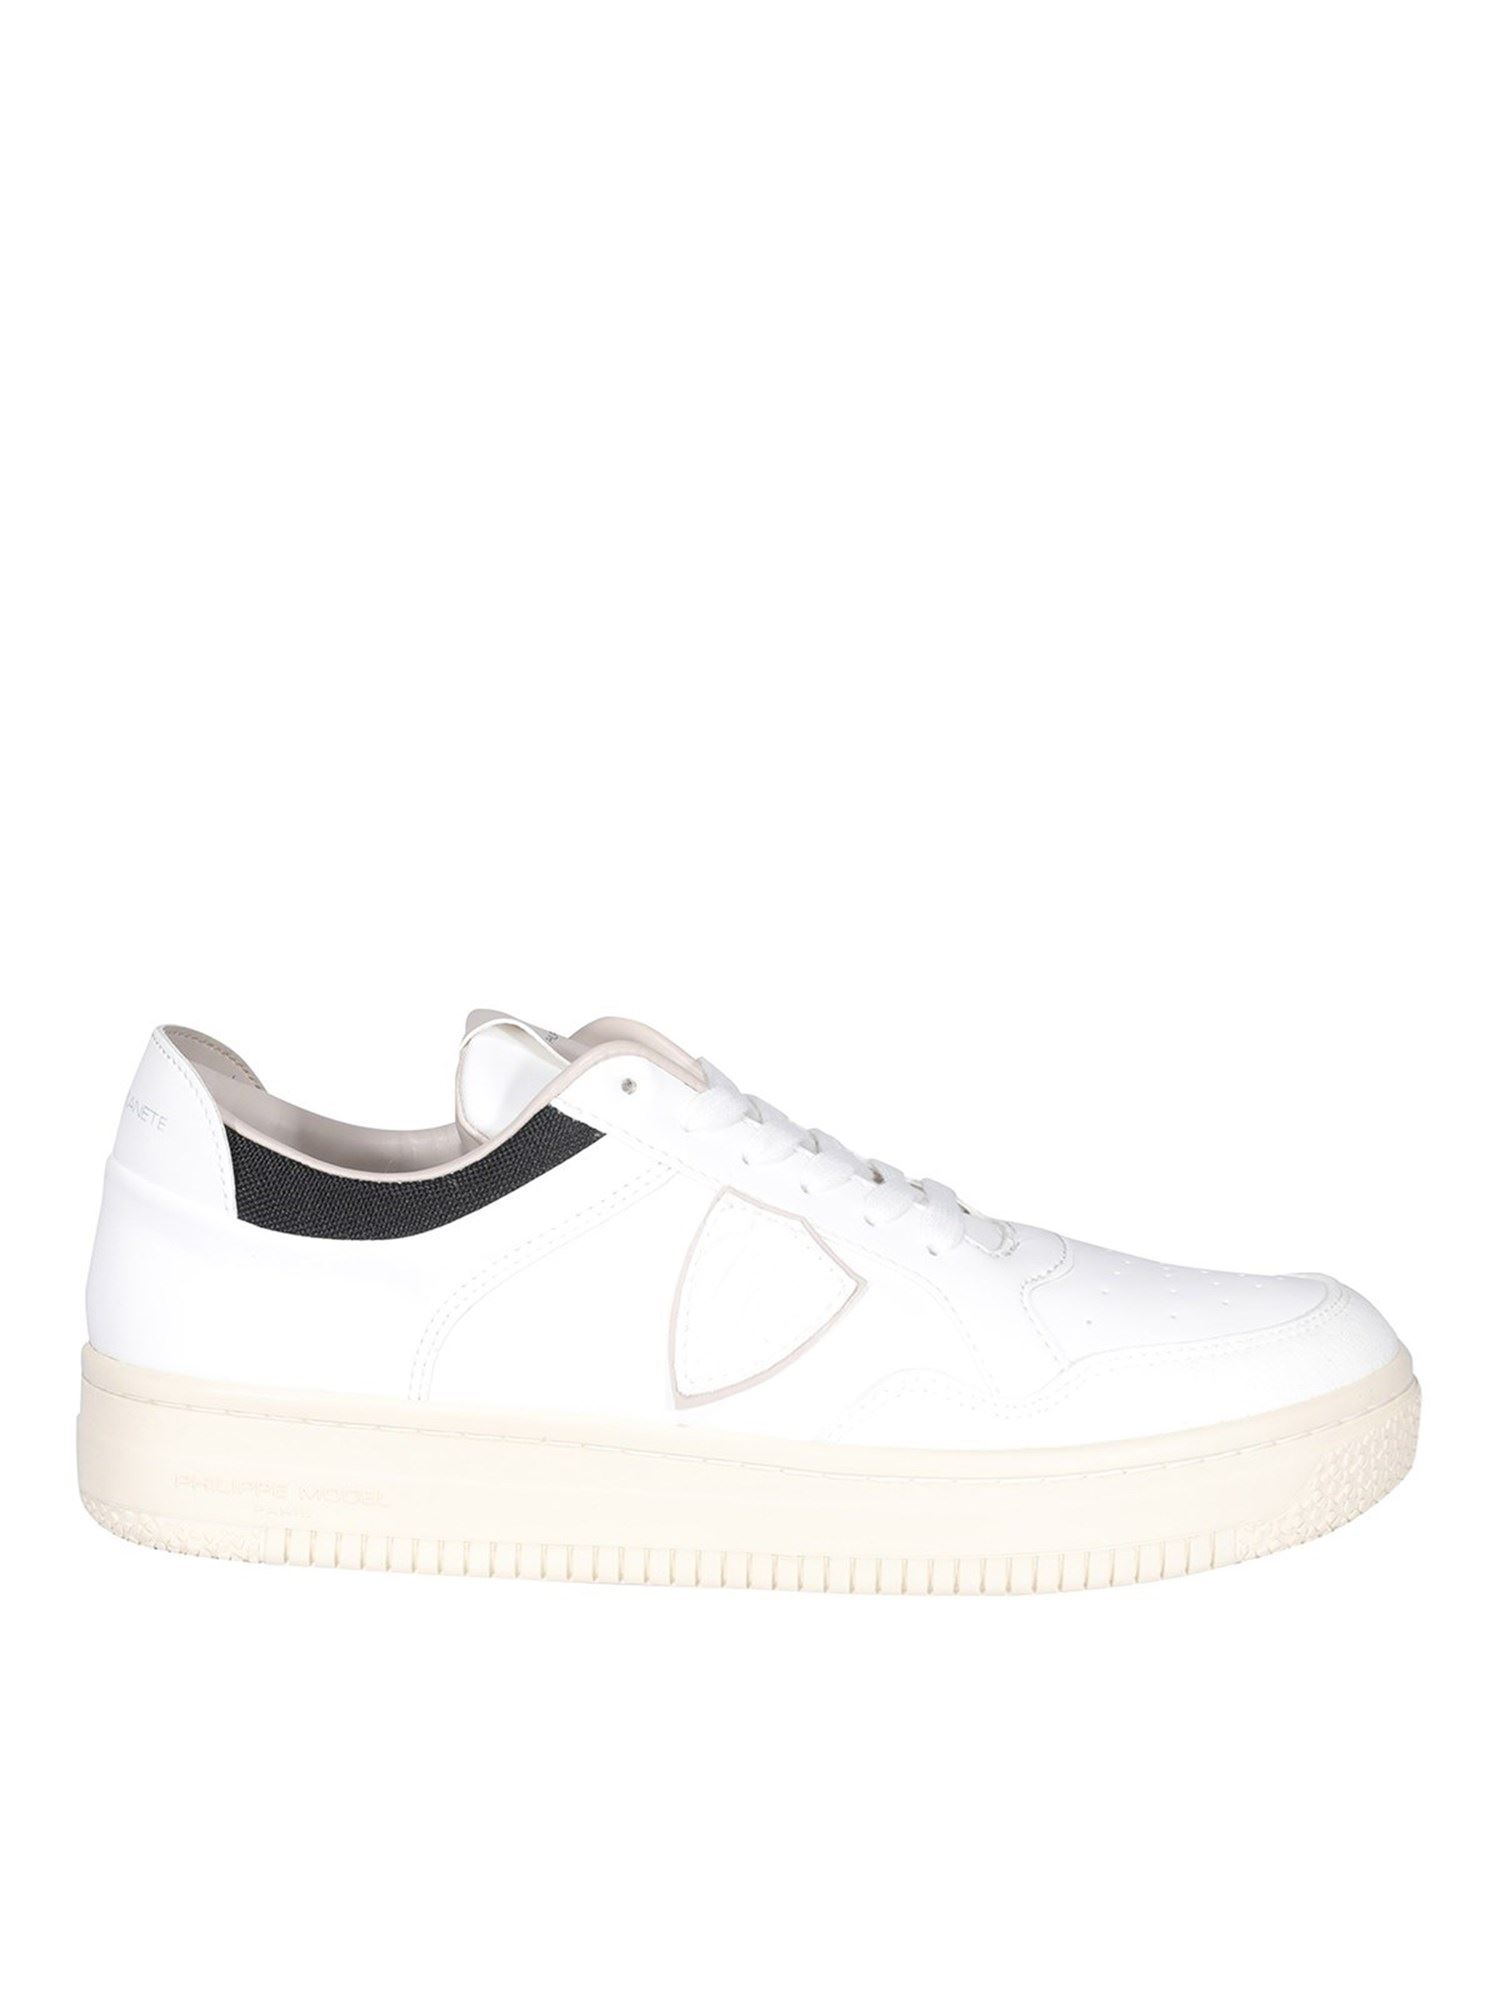 Philippe Model Sneakers LYON BLE ECO-FRIENDLY SNEAKERS IN WHITE